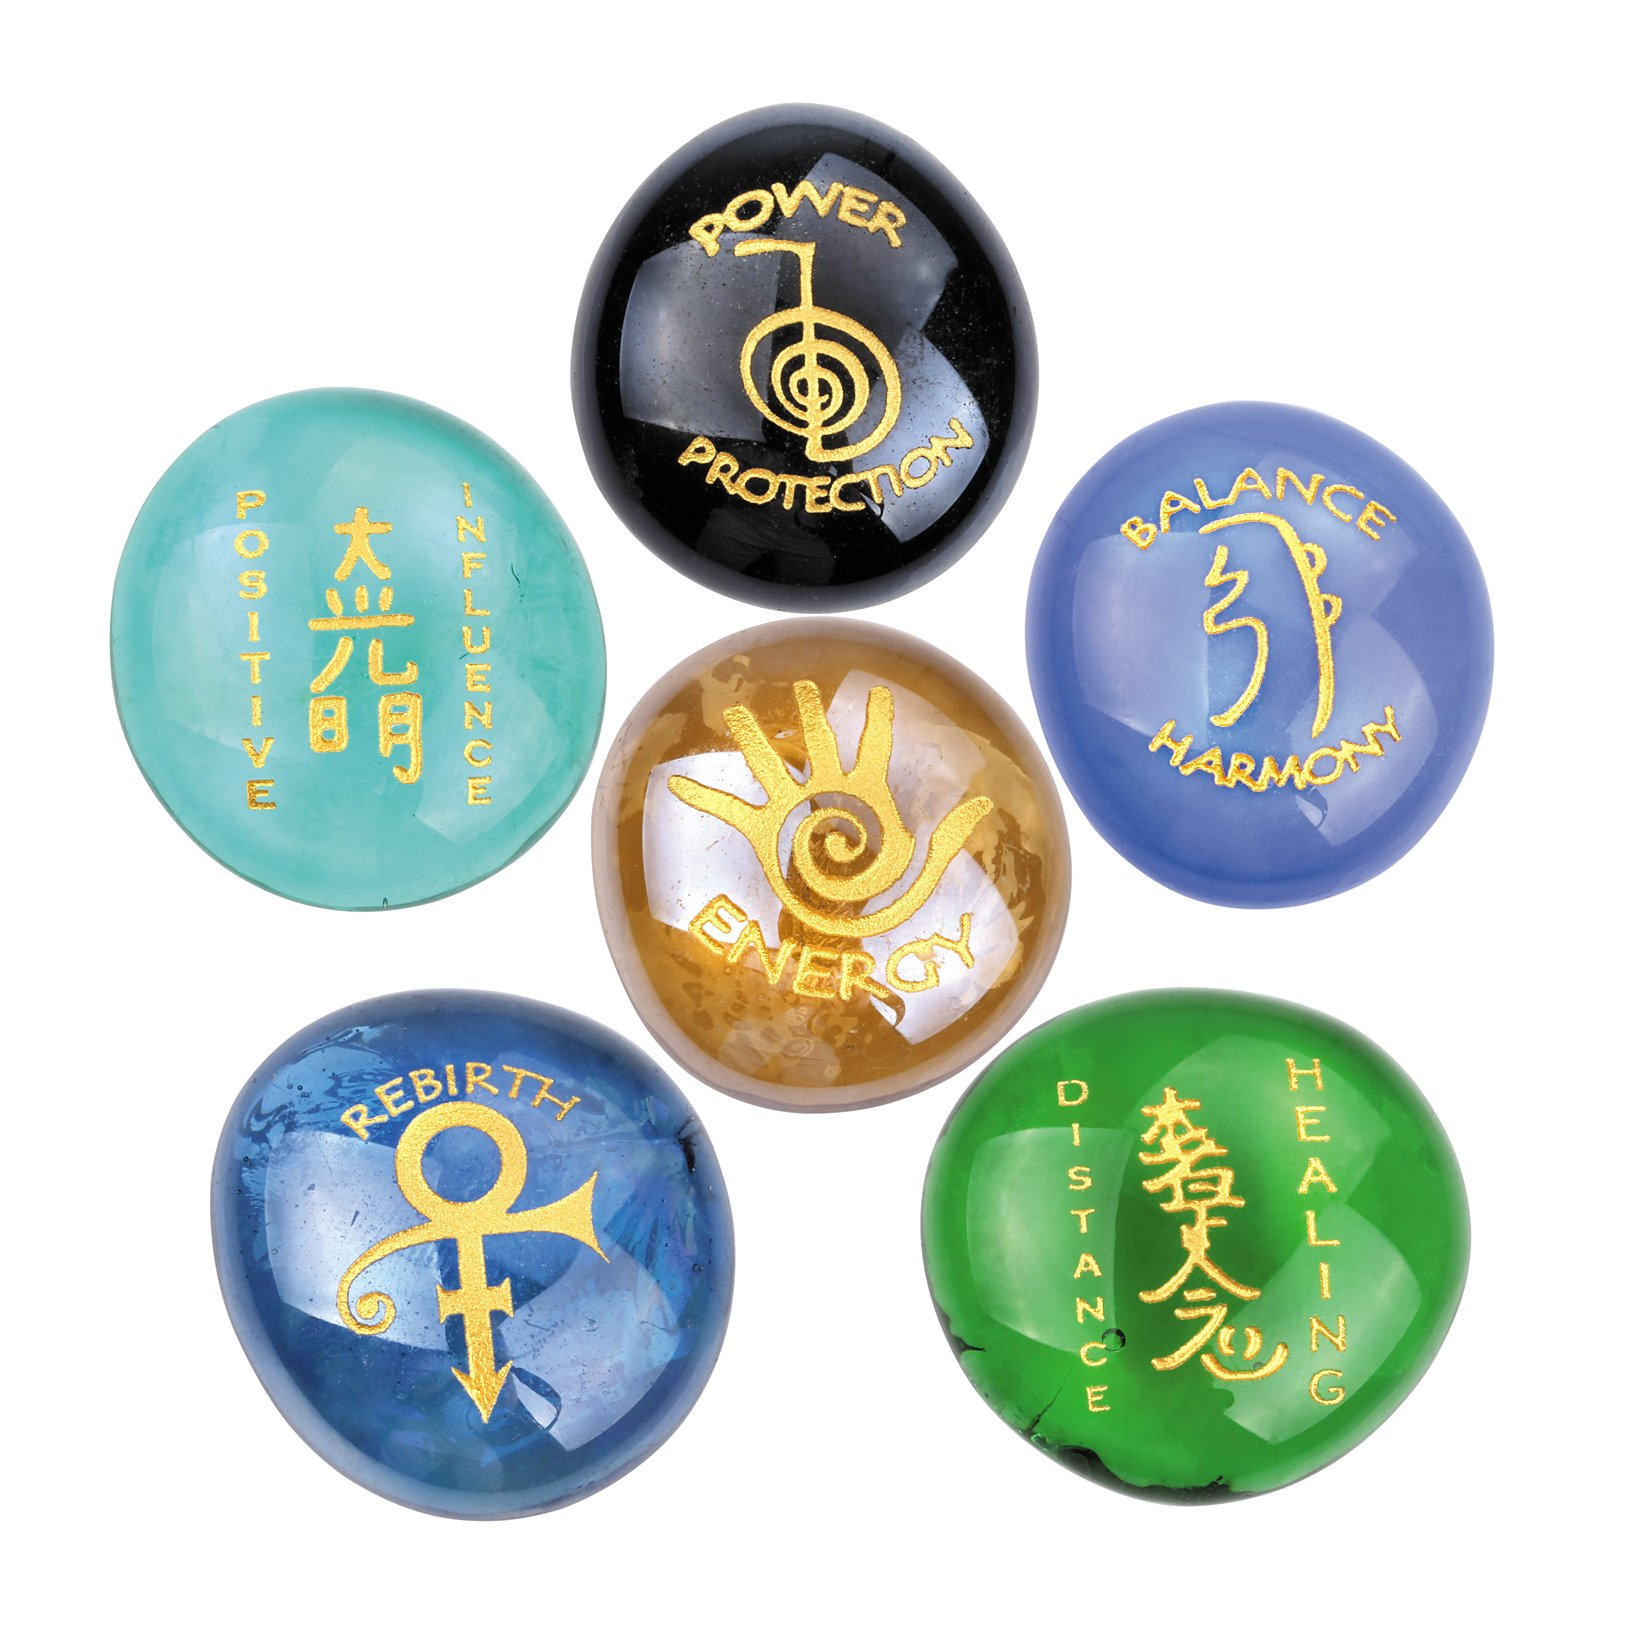 View All Ancient Lucky ChoKu Rei Reiki Powers Tibetan Symbols Amulets and Talismans